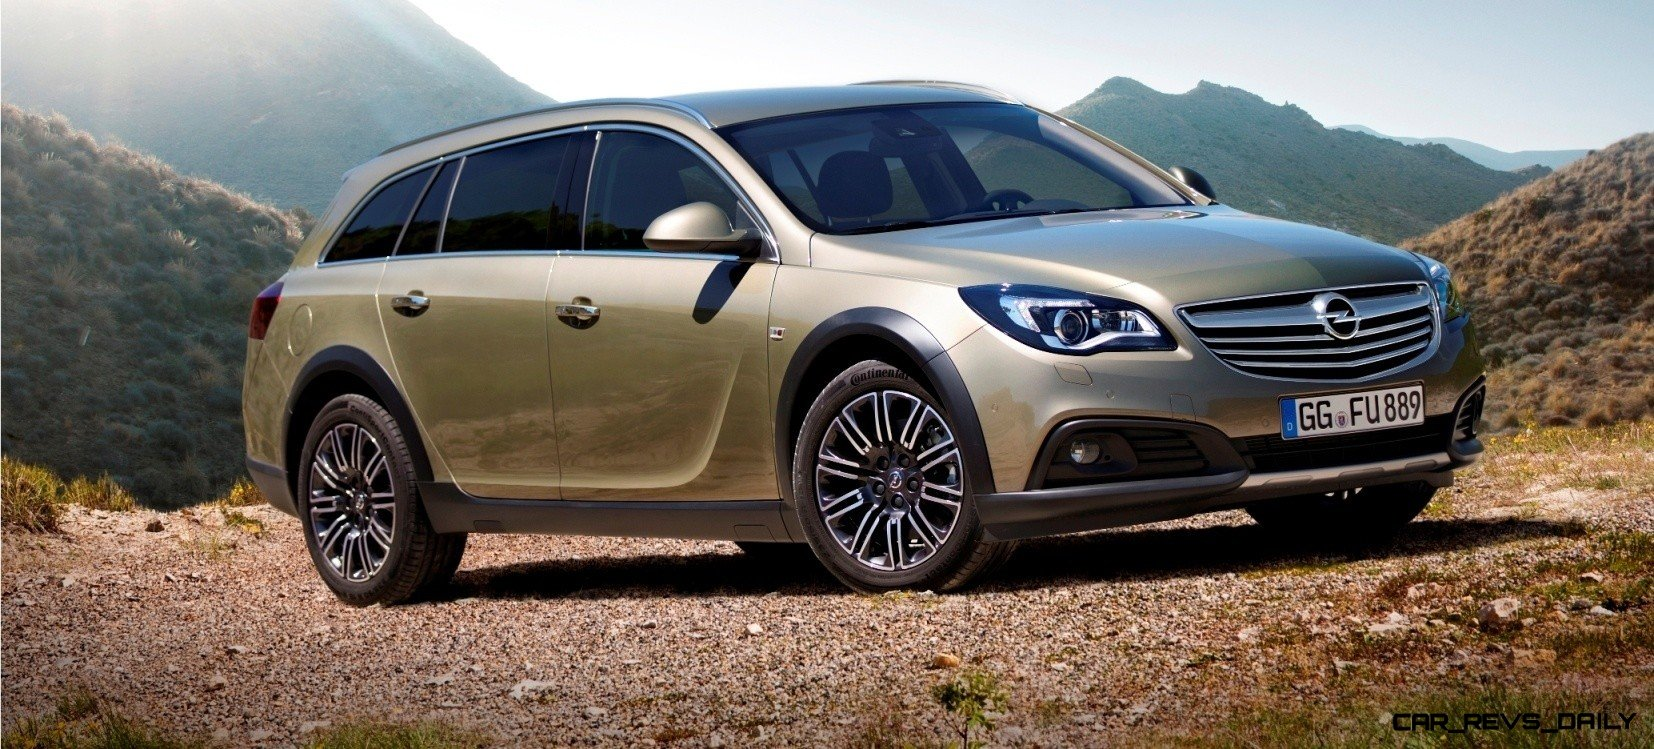 Opel-Insignia-Country-Tourer-286820